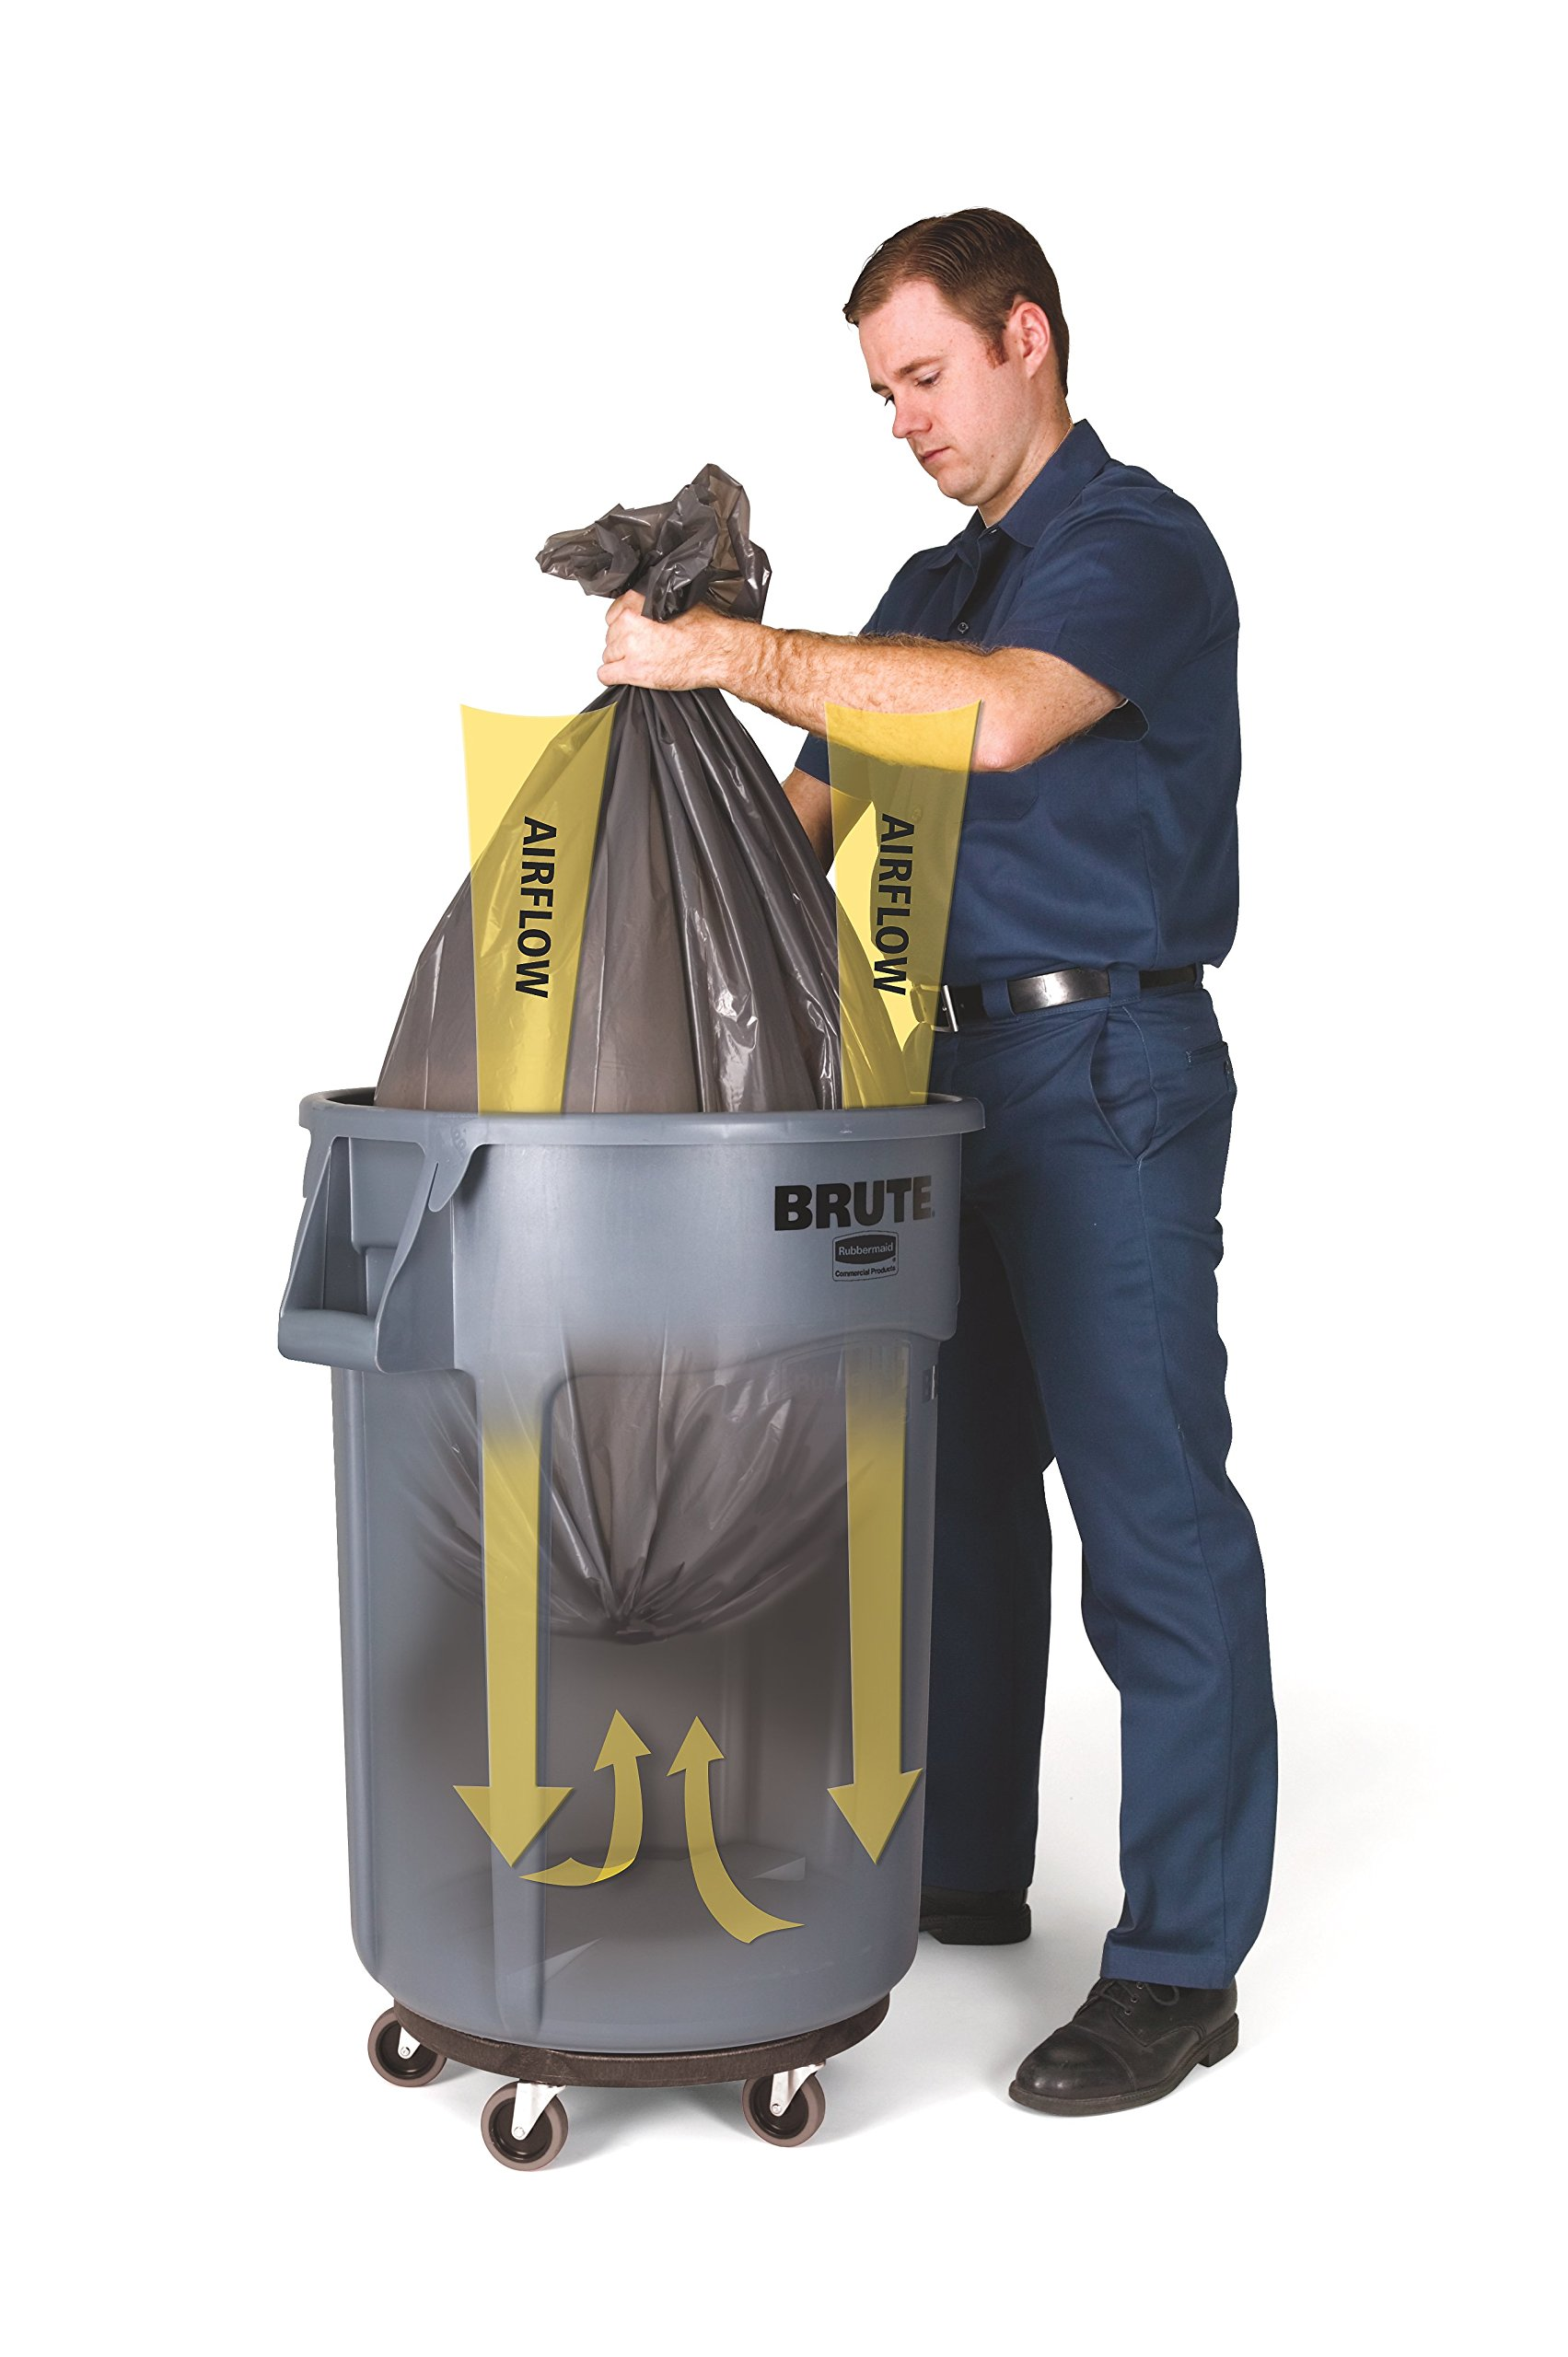 Rubbermaid Commercial Products FG263200GRAY BRUTE Heavy-Duty Round Trash/Garbage Can, 32-Gallon, Gray by Rubbermaid Commercial Products (Image #8)